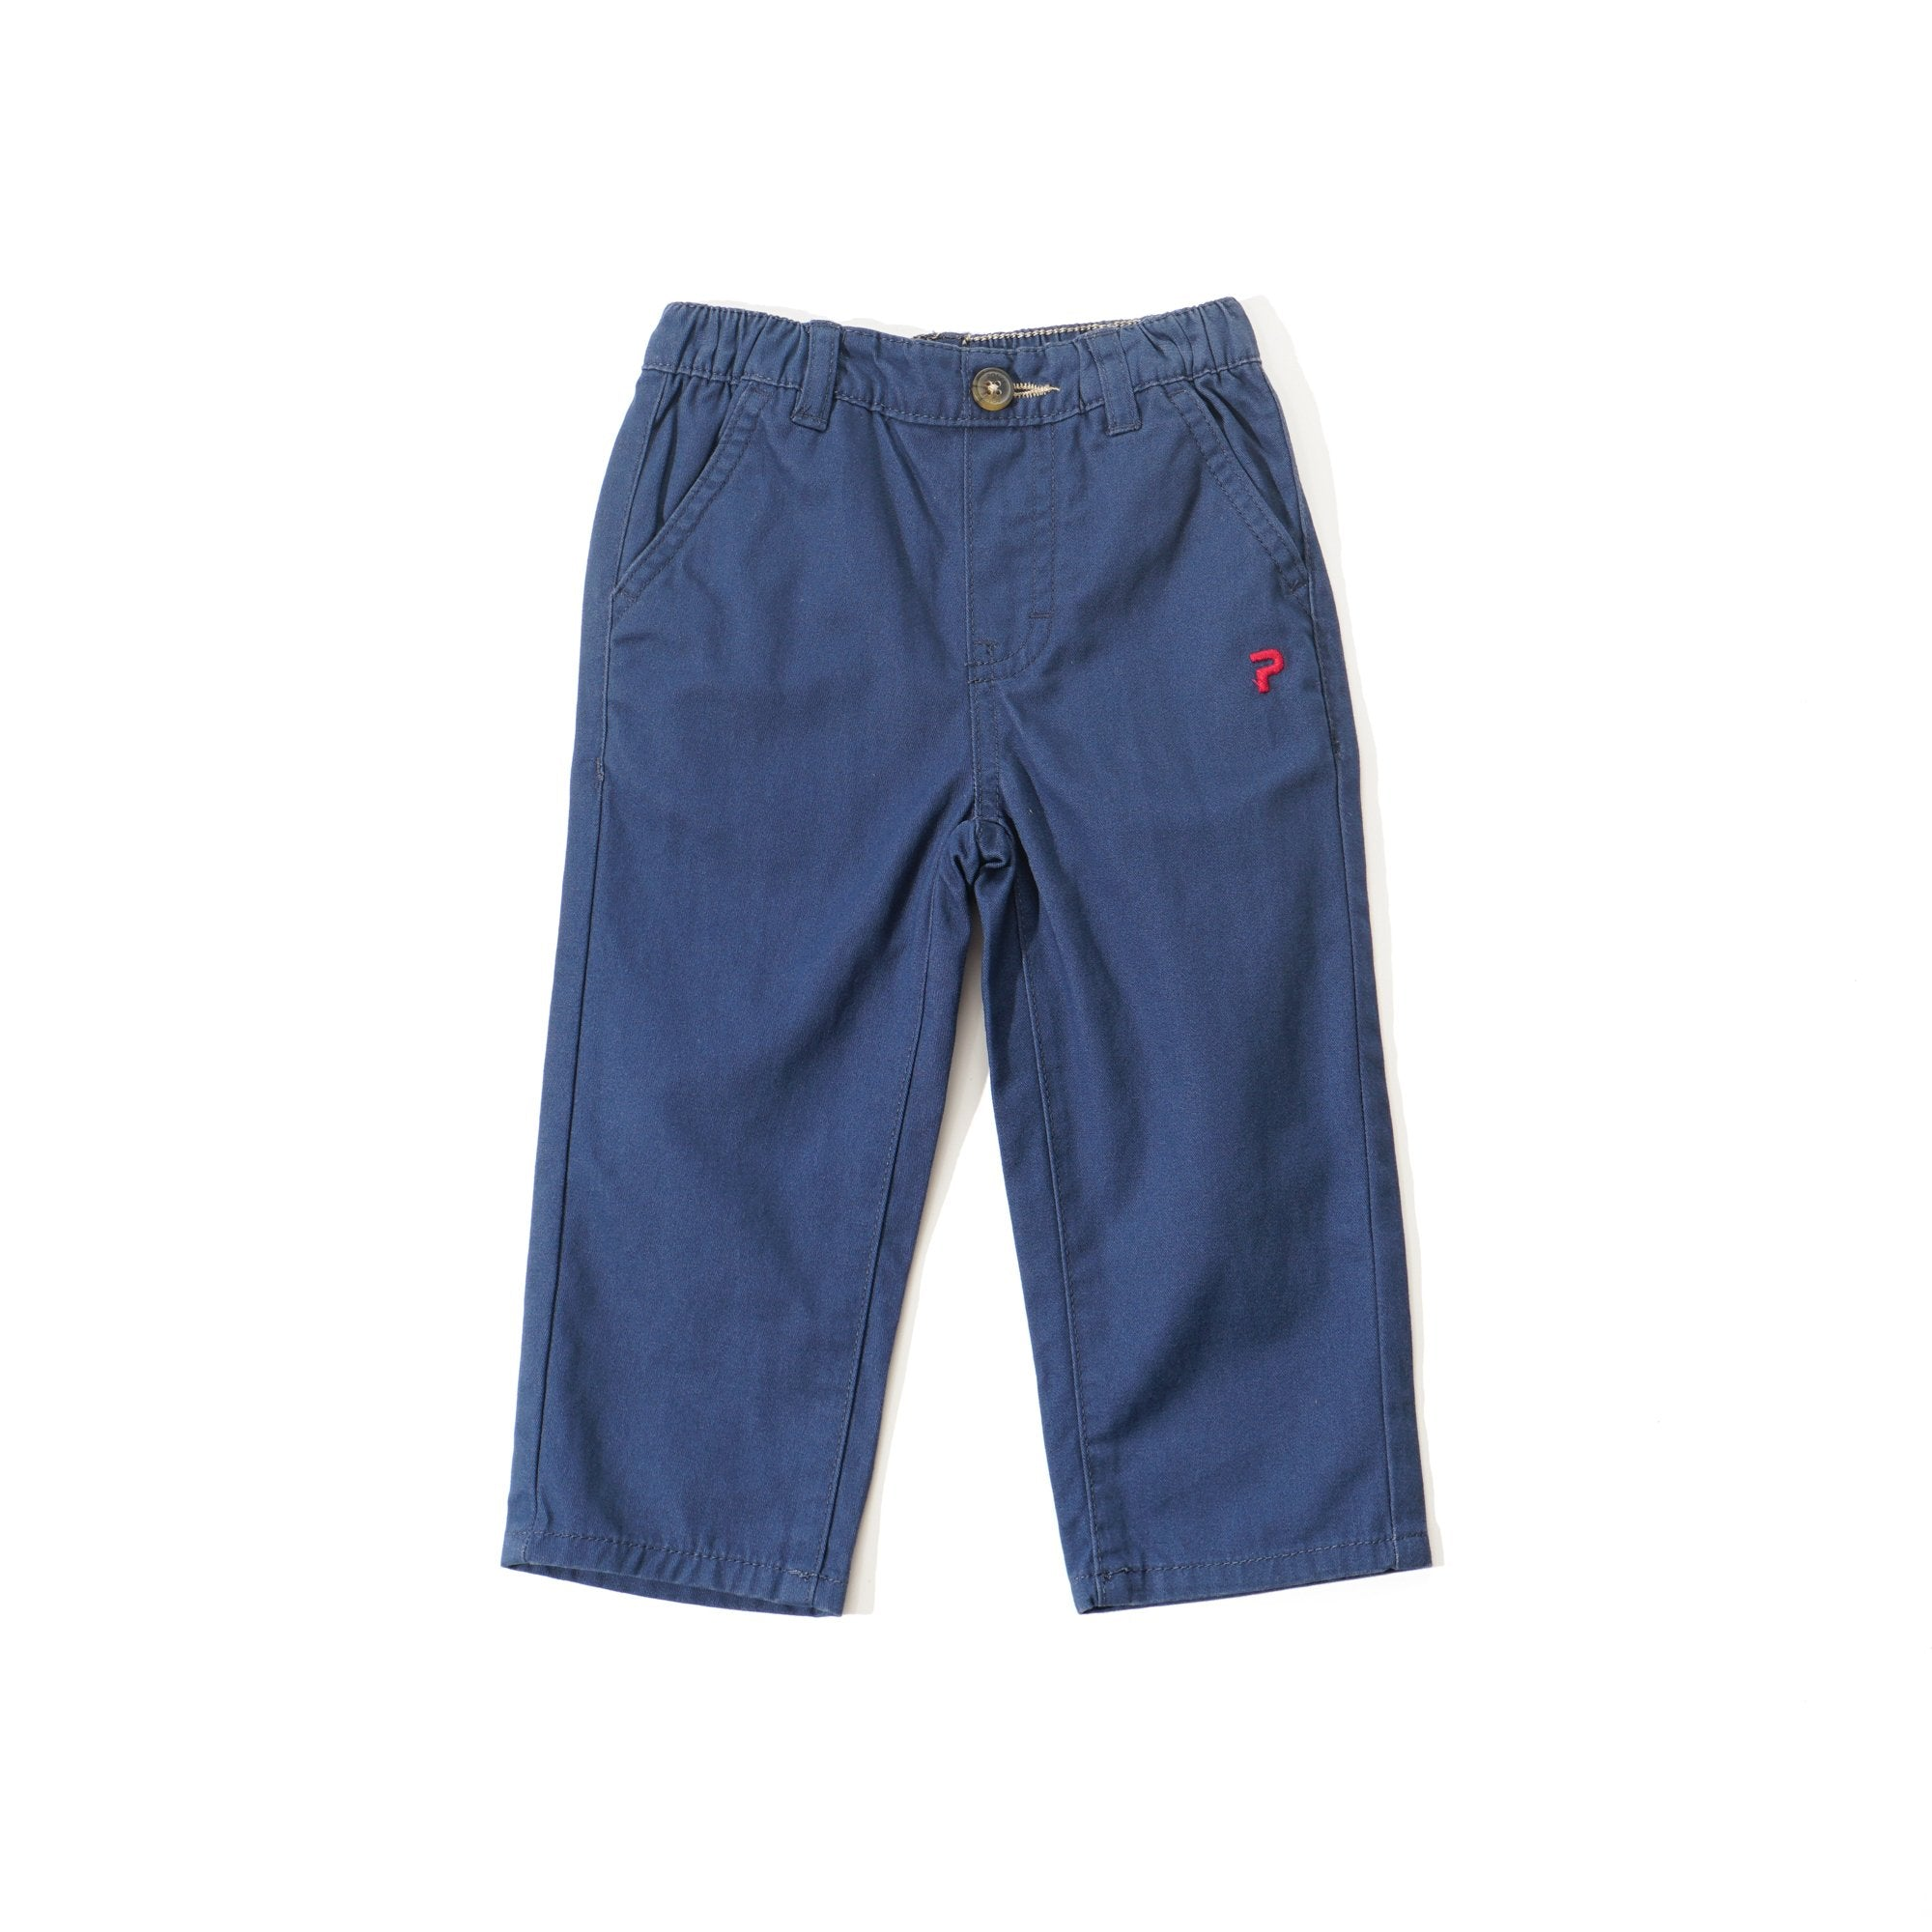 Poney Boys Long Pants 8072 (6mths-12yrs)